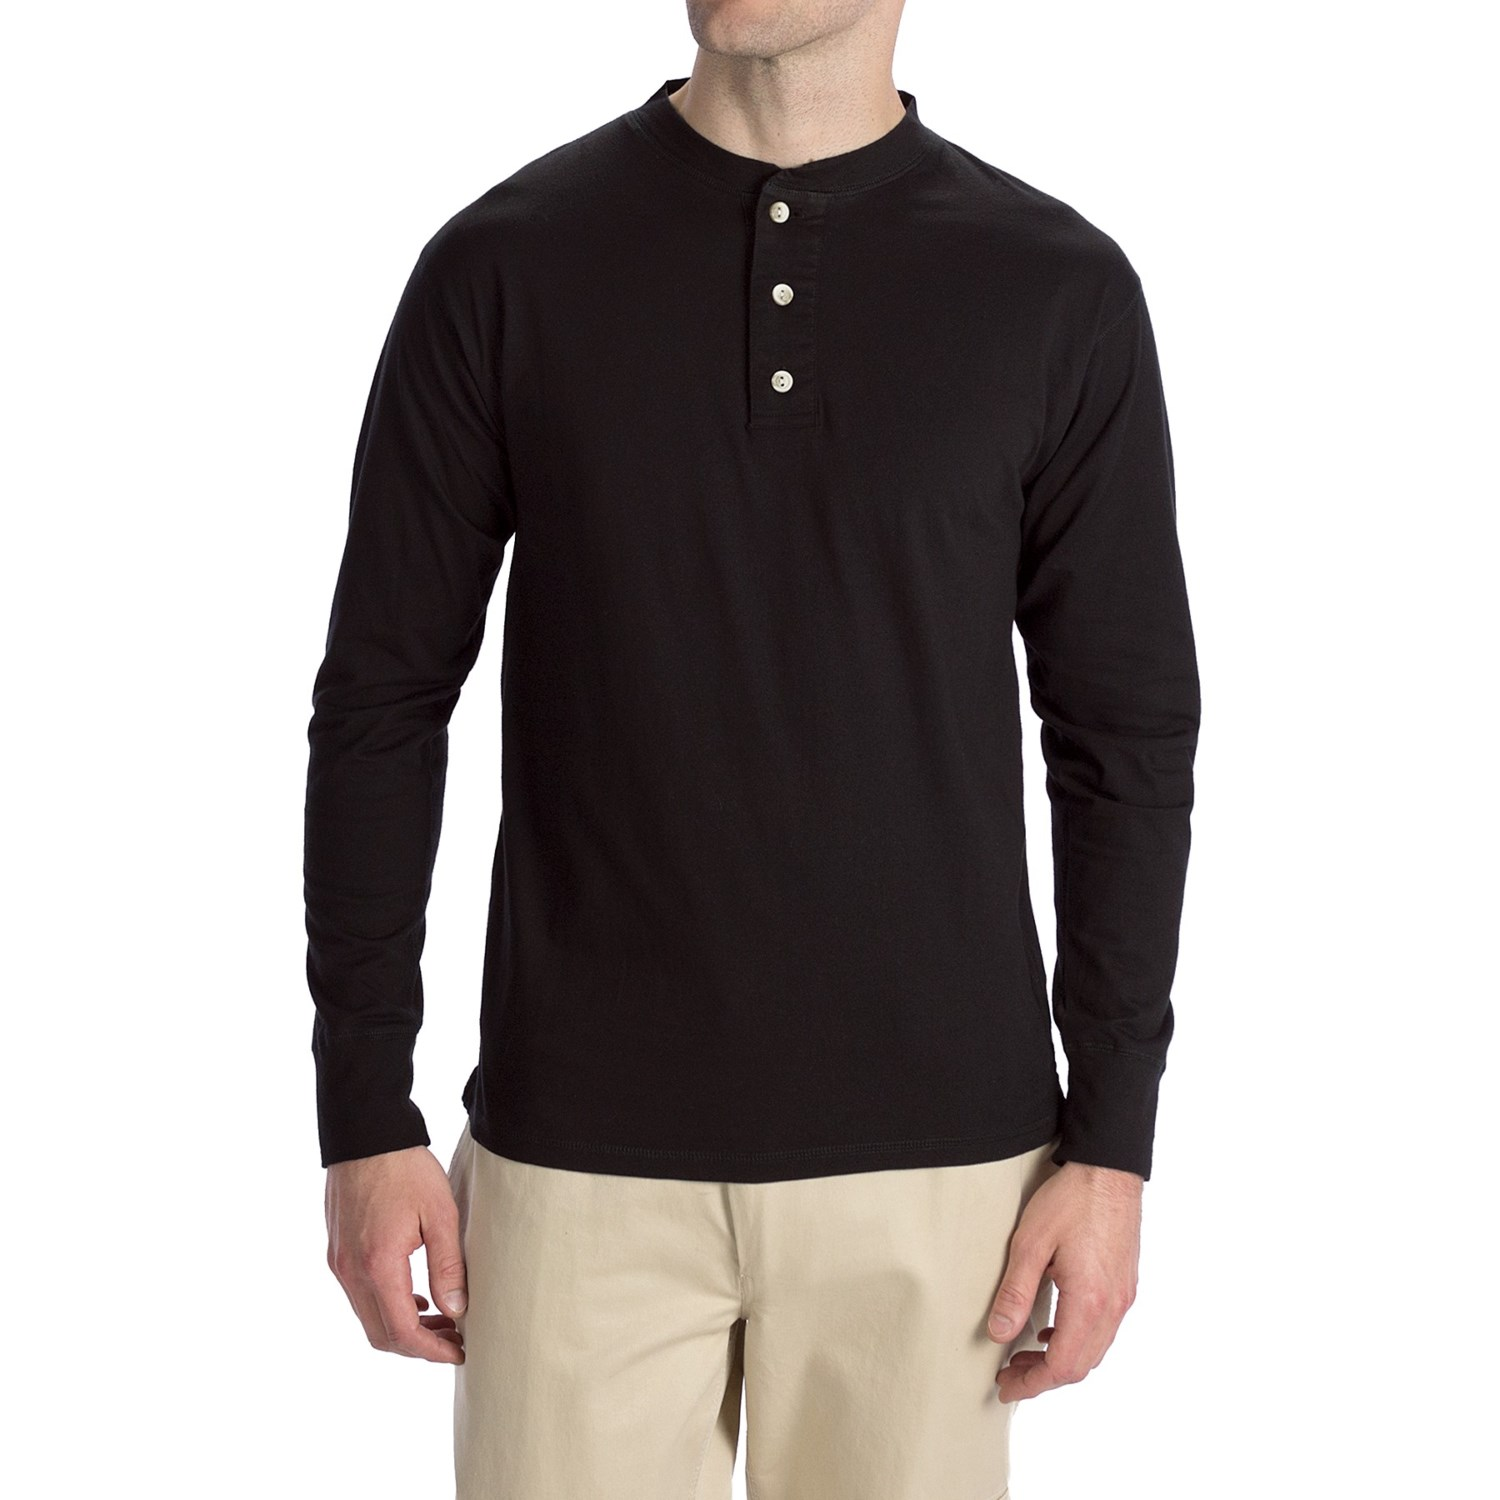 options top dyed jersey henley shirt cotton long sleeve